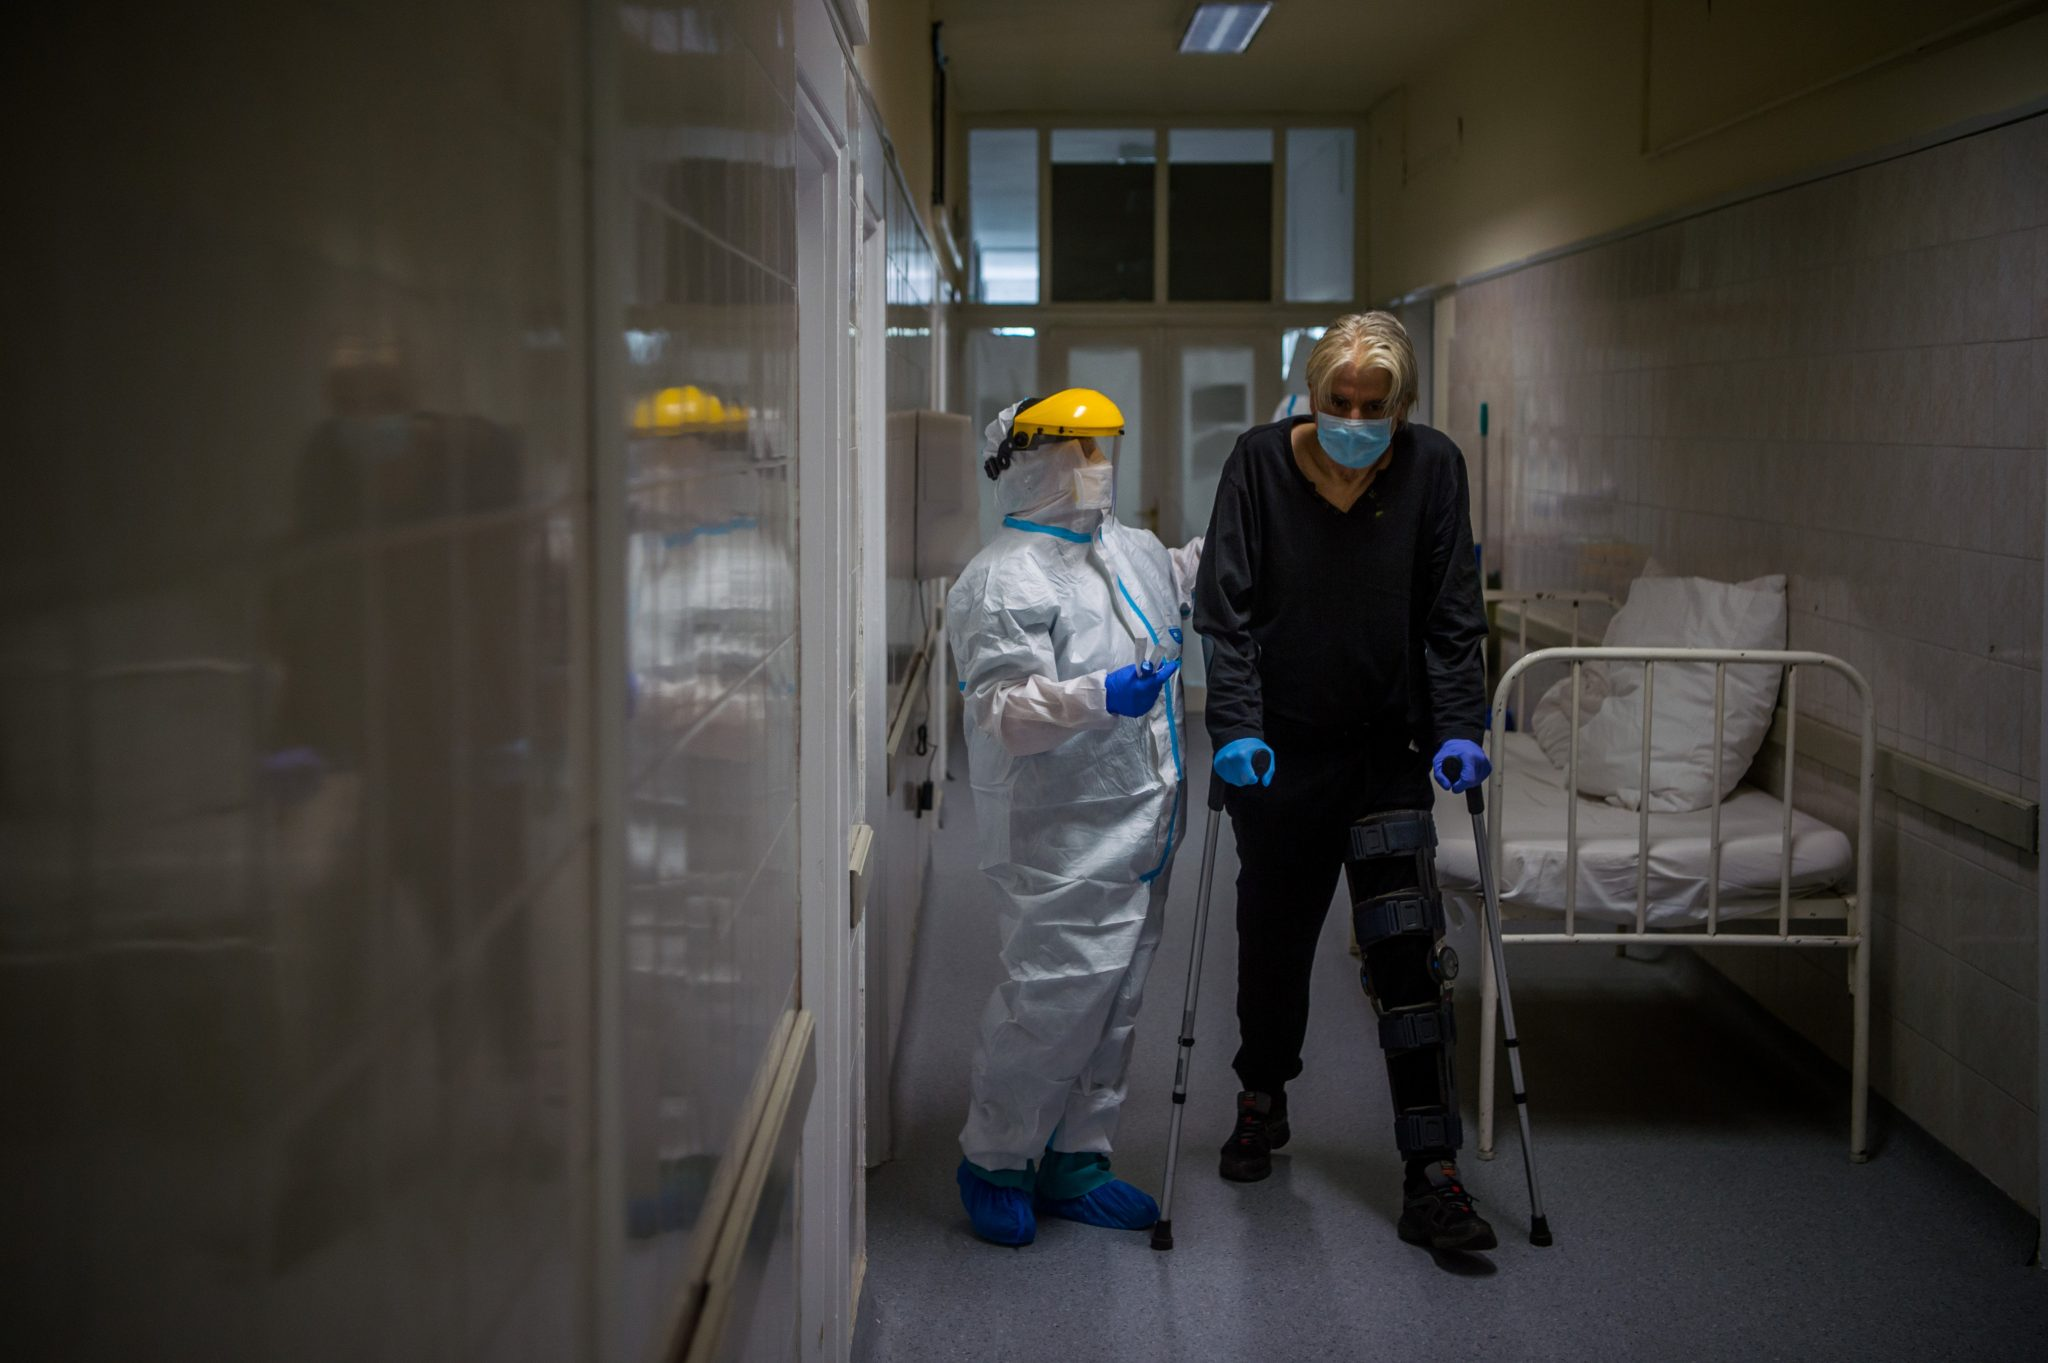 Coronavirus: Hungary Sees Plateauing Epidemic but Growing Tension in January